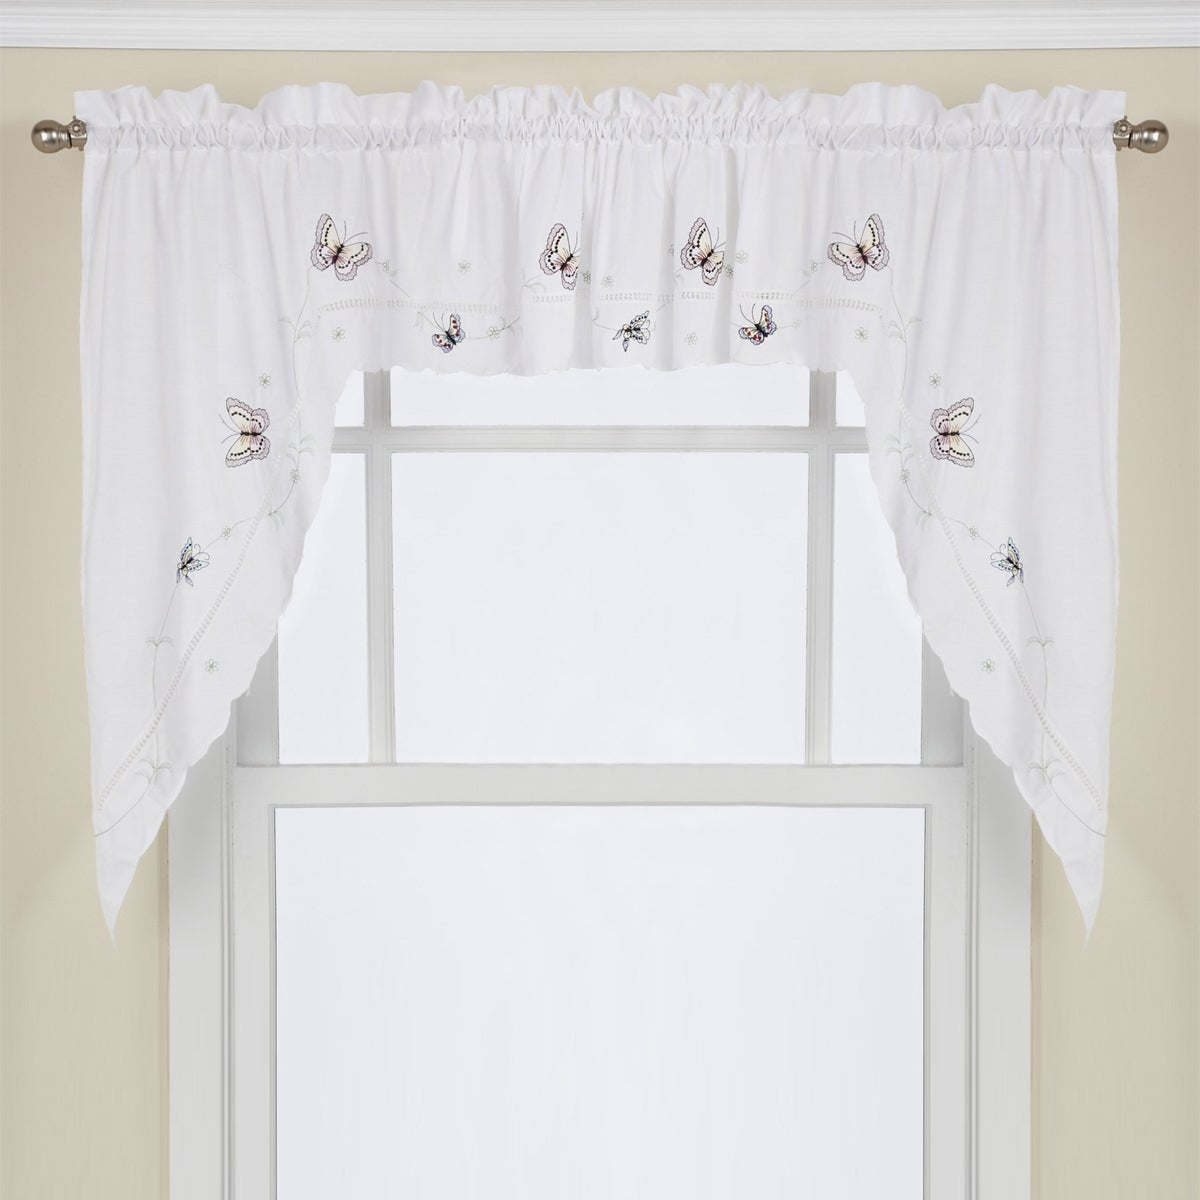 Embroidered Fluttering Butterfly Kitchen Curtains Tiers Swag